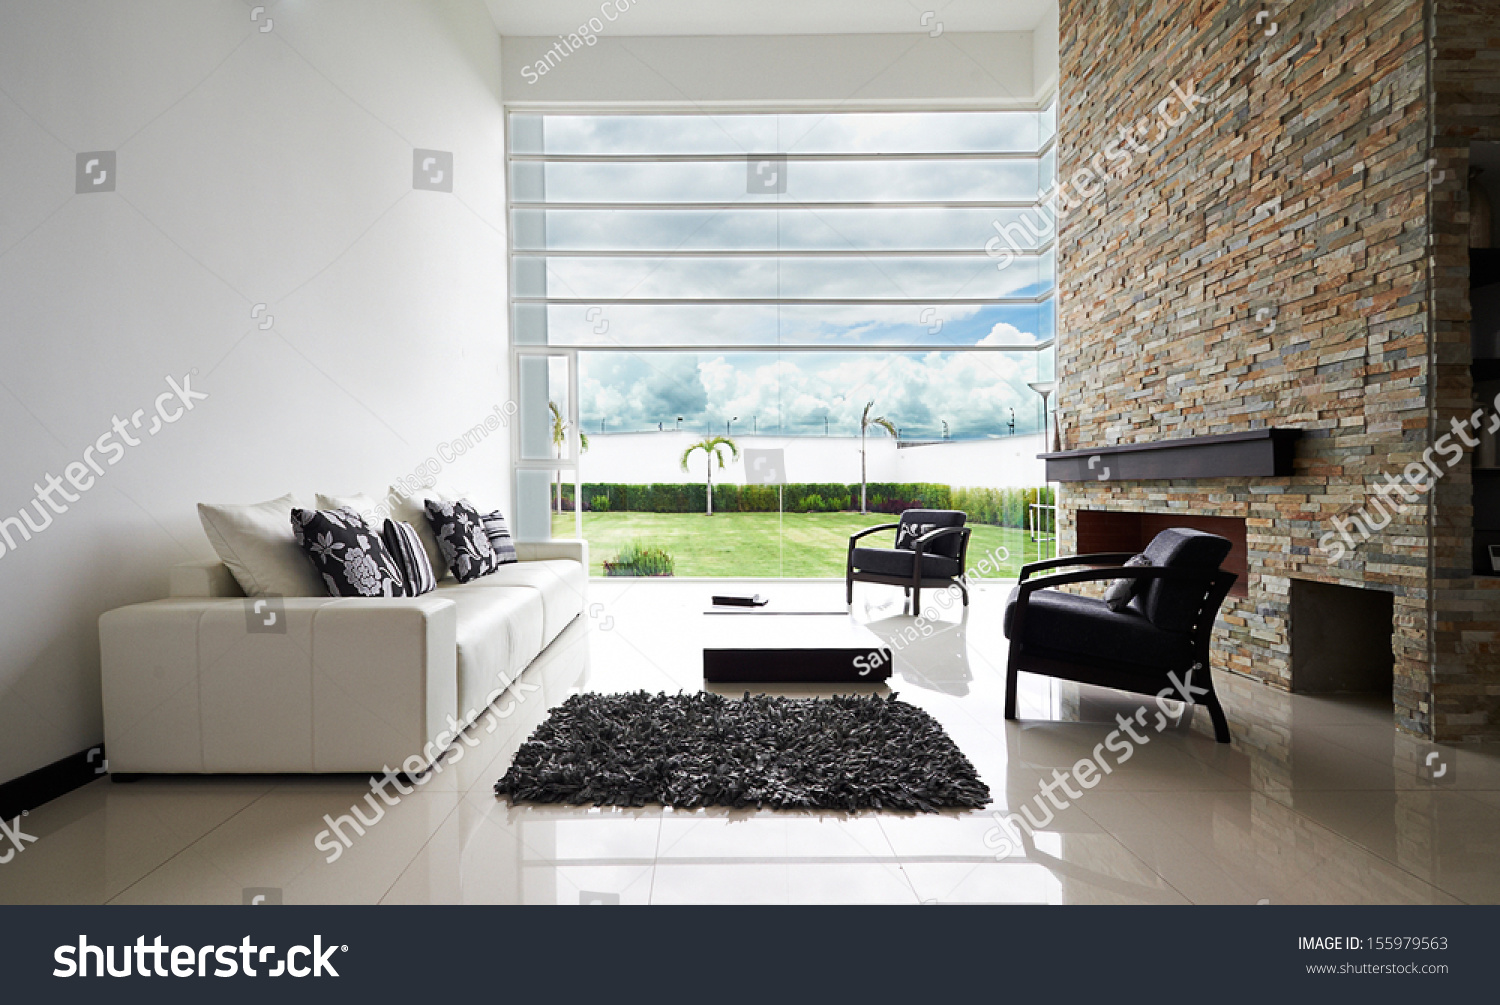 Big empty living room -  Living Room With Big Empty White Wall Preview Save To A Lightbox